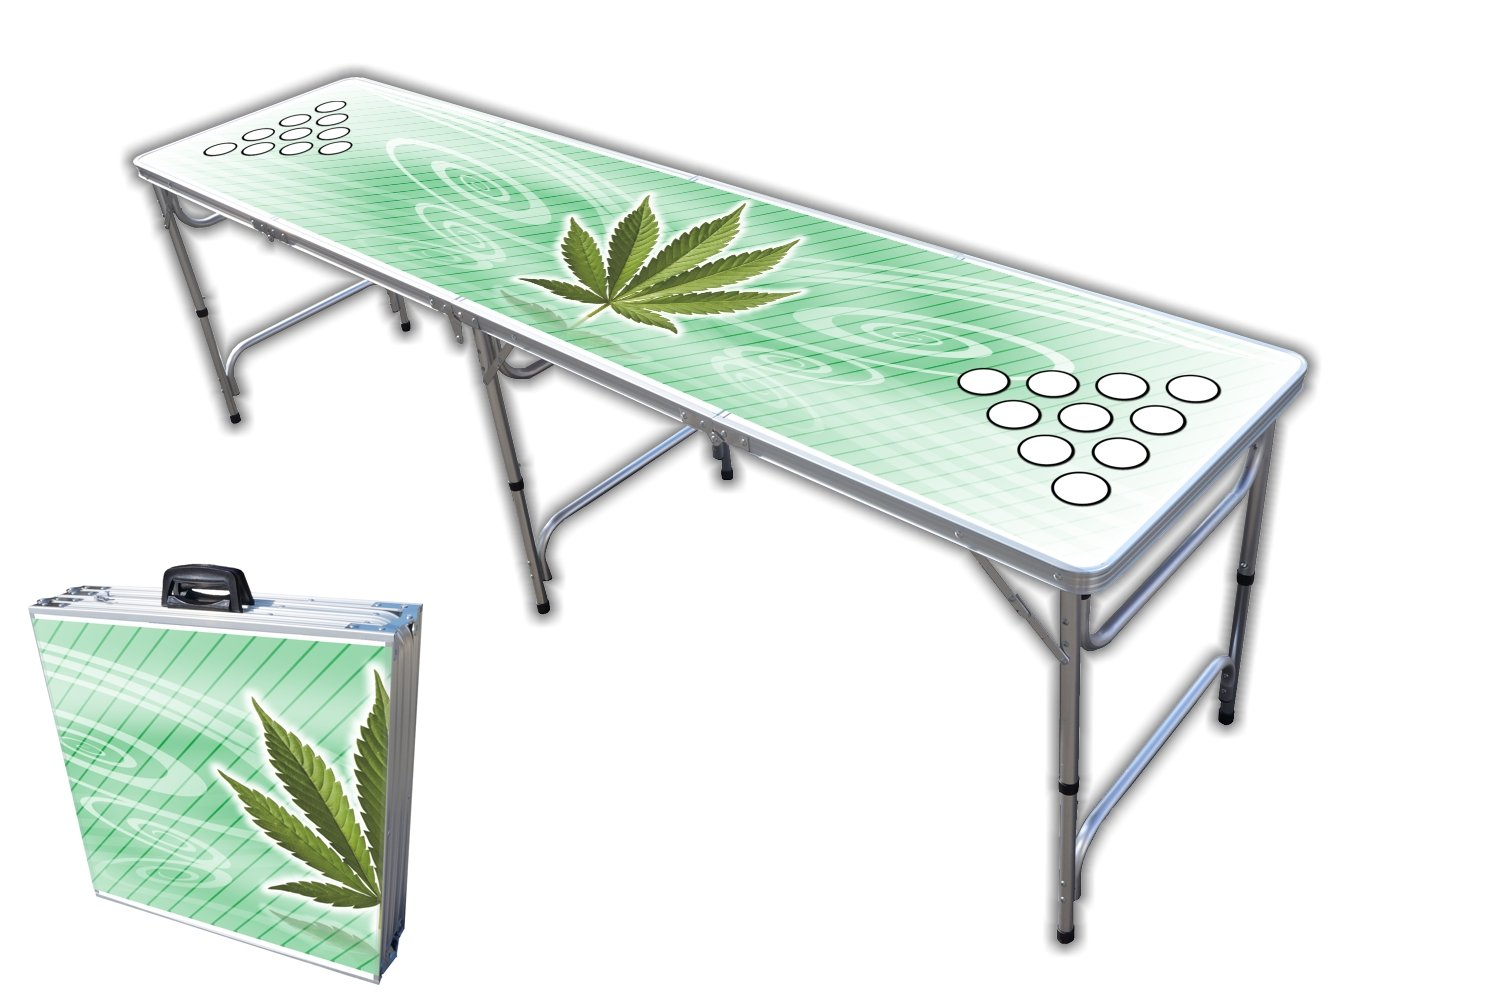 8-Foot Professional Beer Pong Table w/Cup Holes - High Times Graphic by PartyPongTables.com